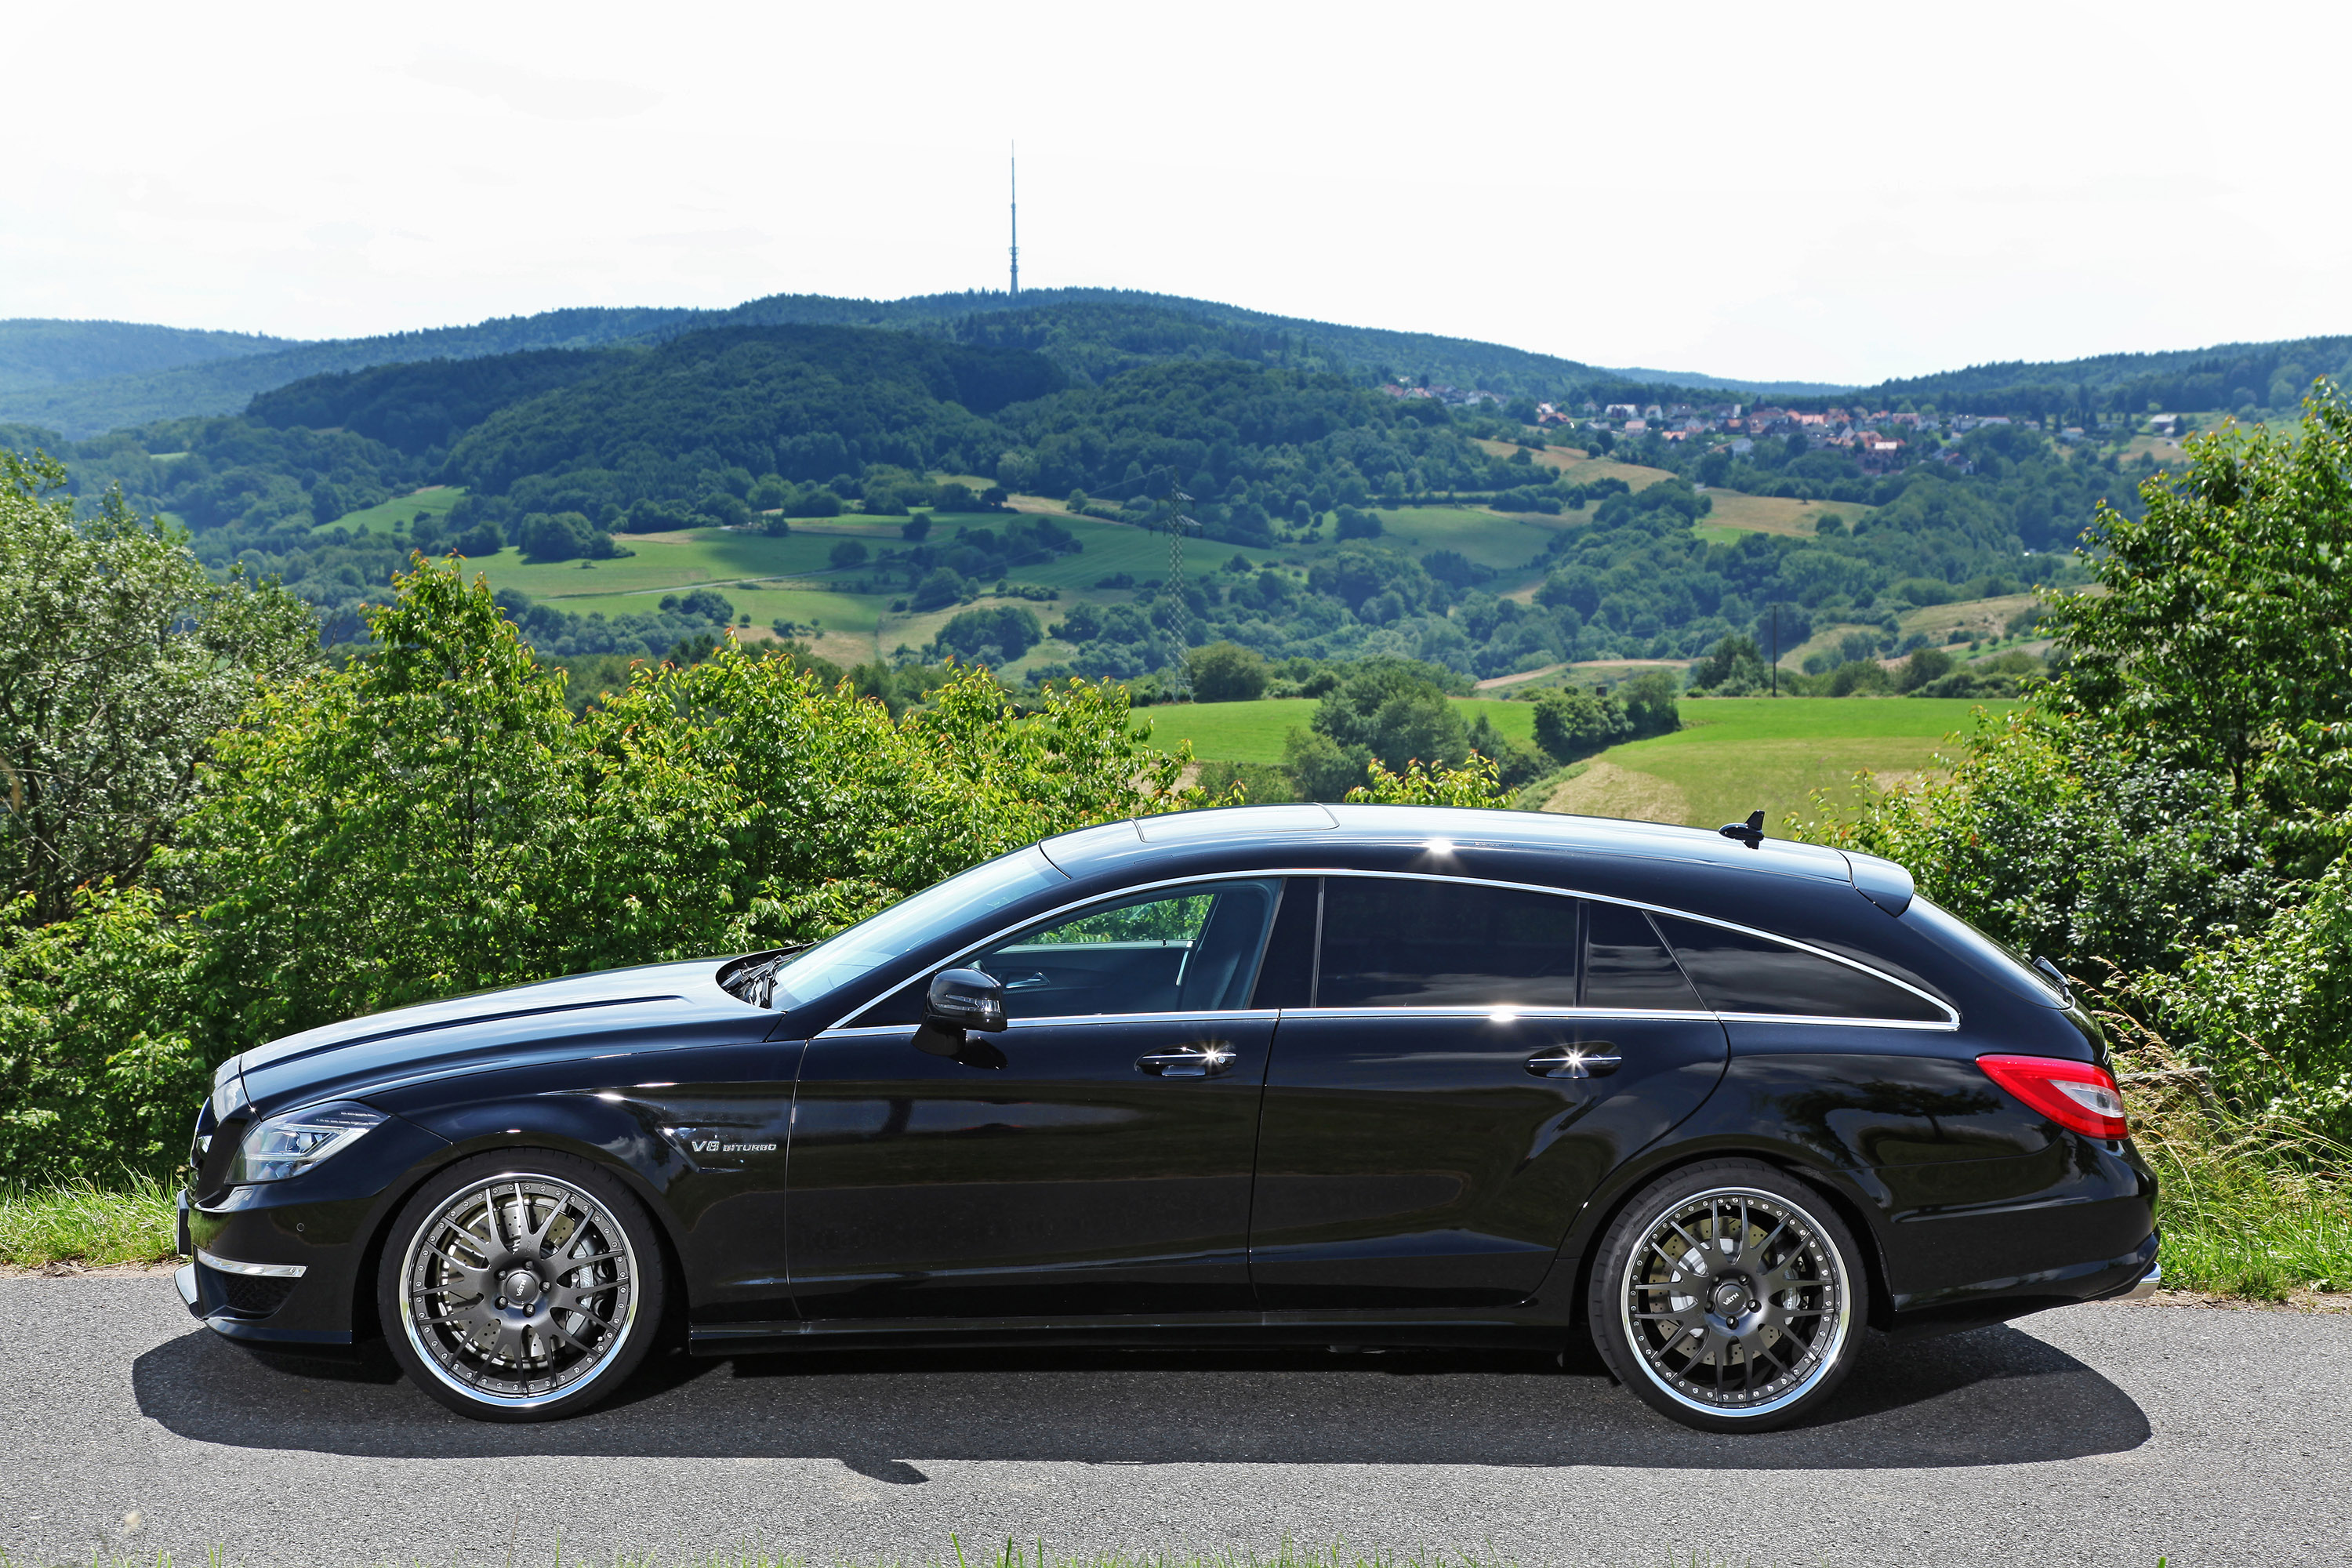 Vath Mercedes Benz Cls 63 Amg Shooting Brake 846hp And 1